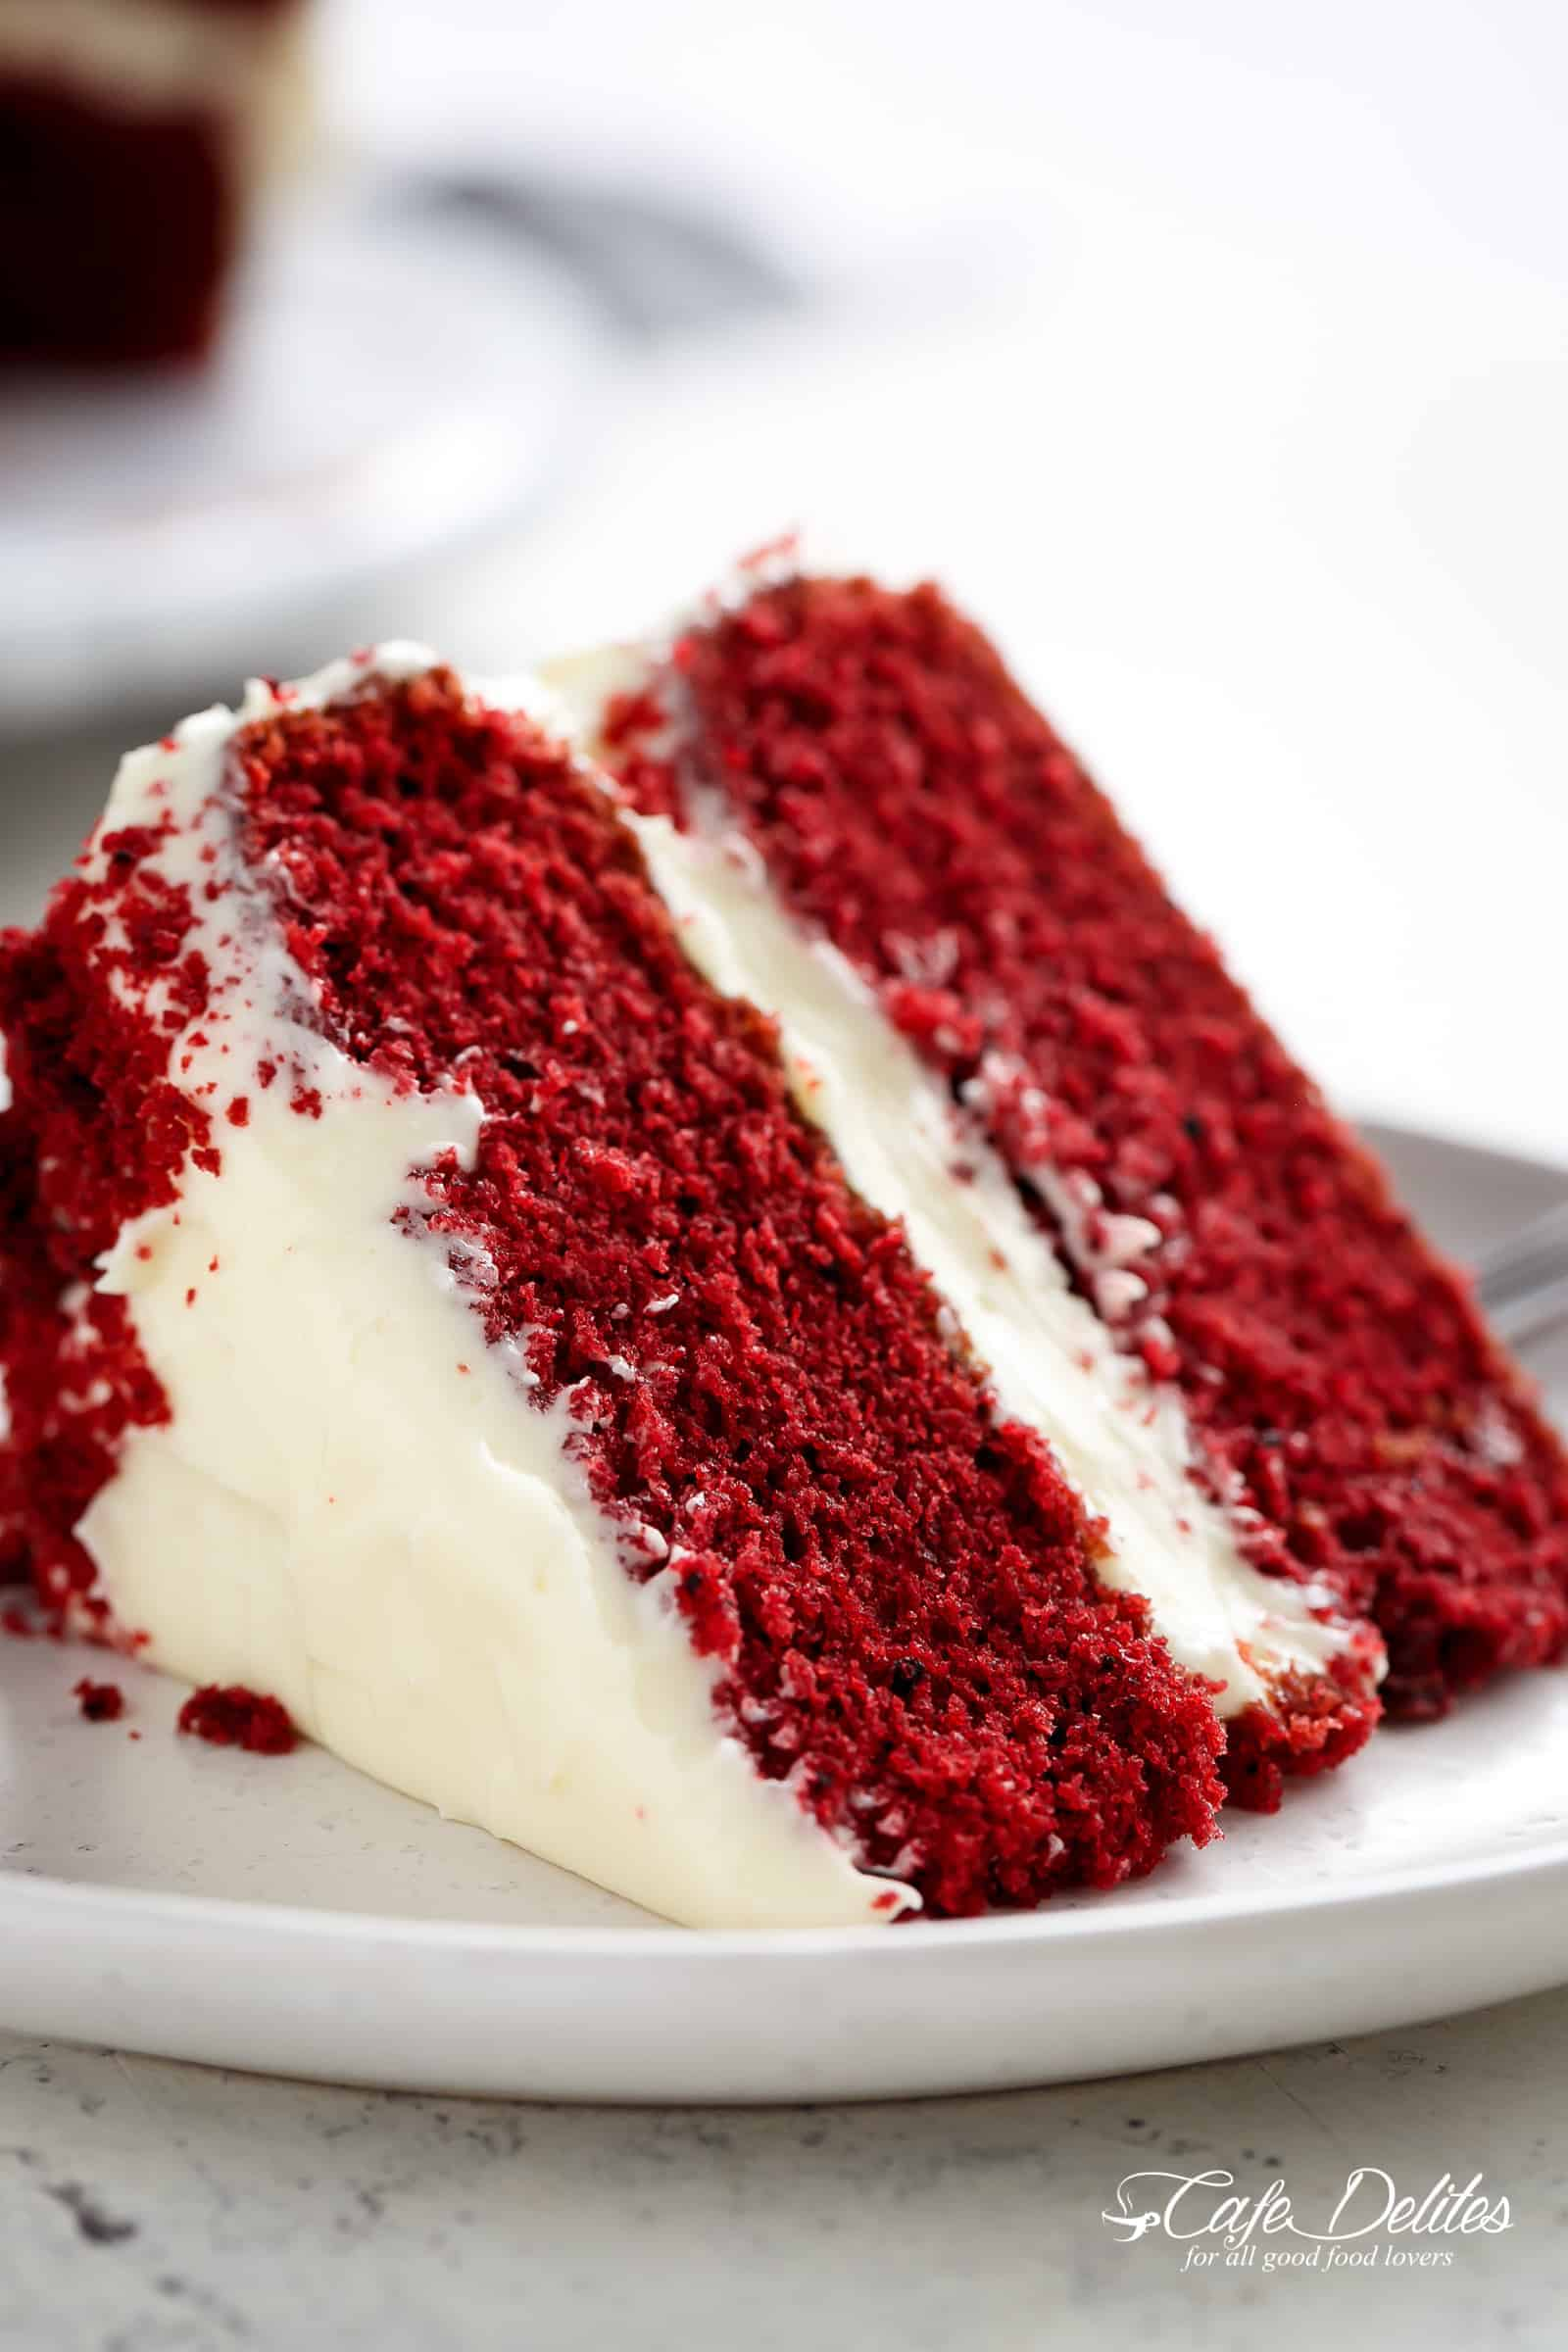 A slice of red velvet cake | cafedelites.com